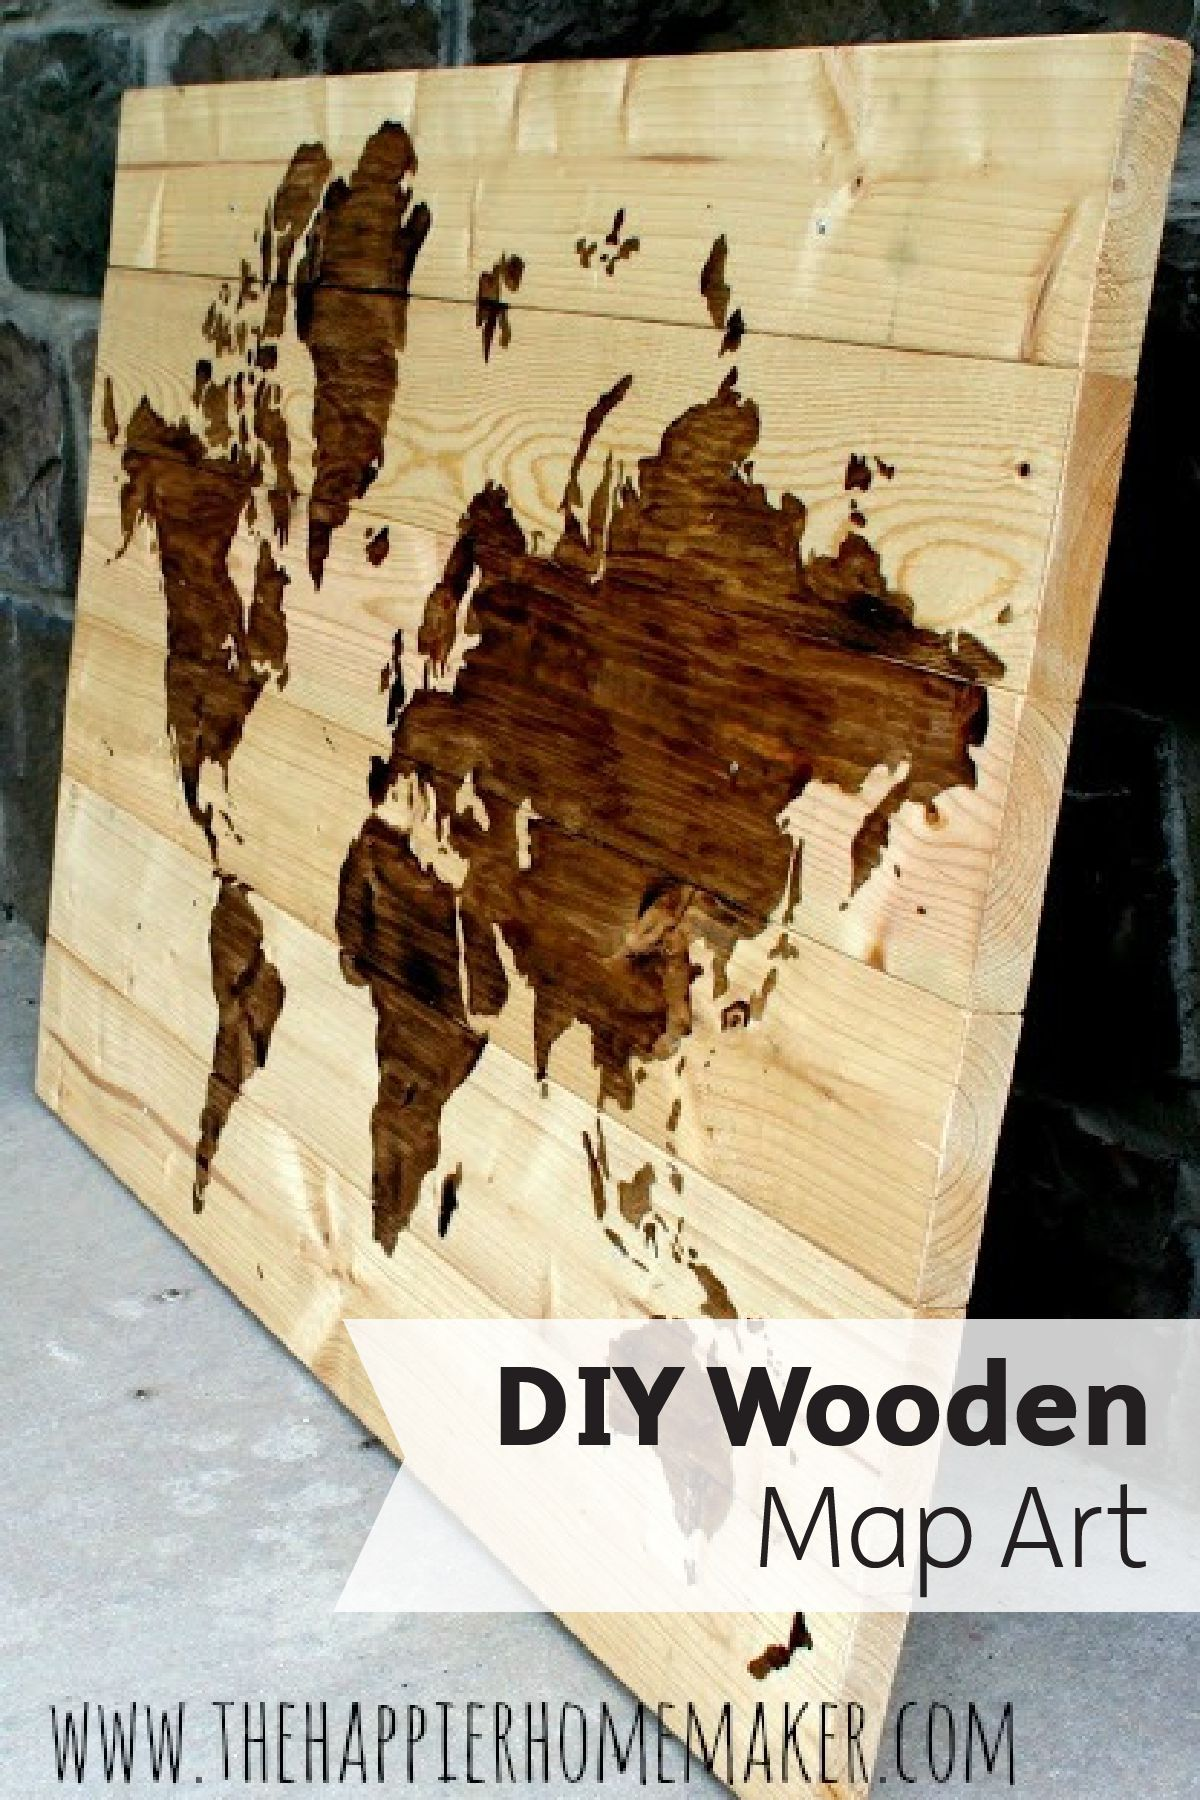 DIY Wooden World Map Art | Office cleaning, Wood stain and Paper towels